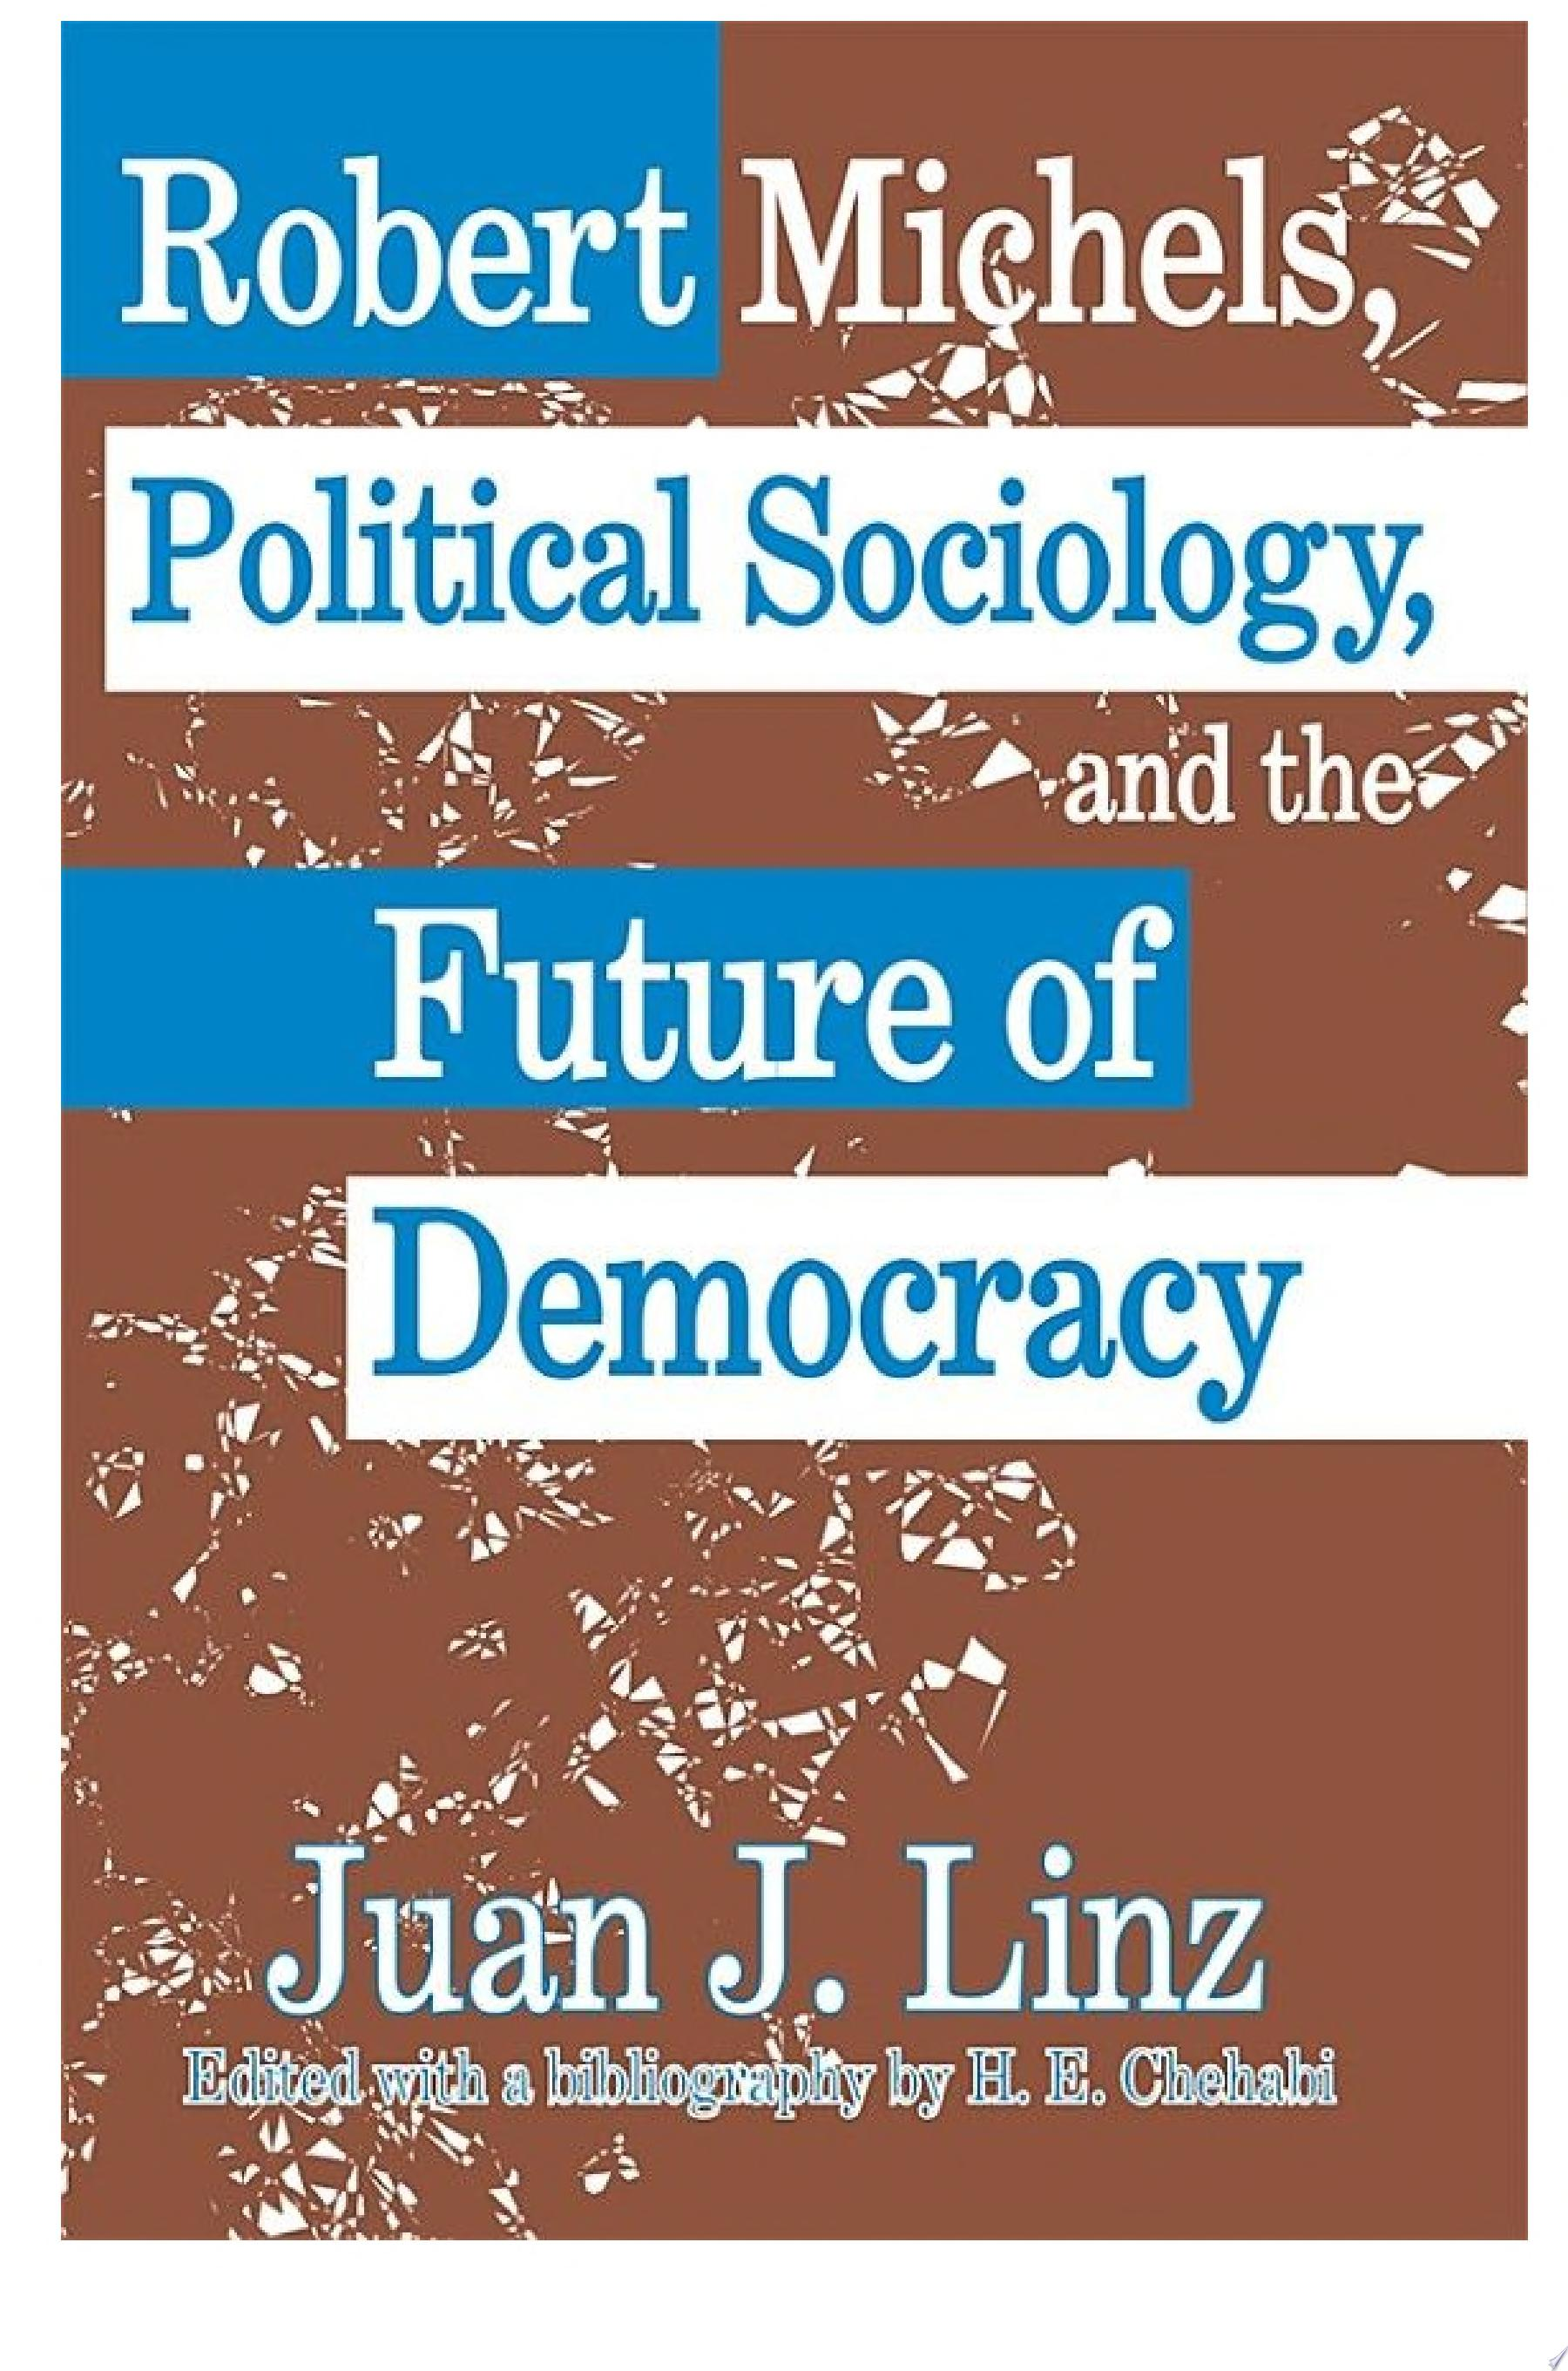 Robert Michels  Political Sociology and the Future of Democracy